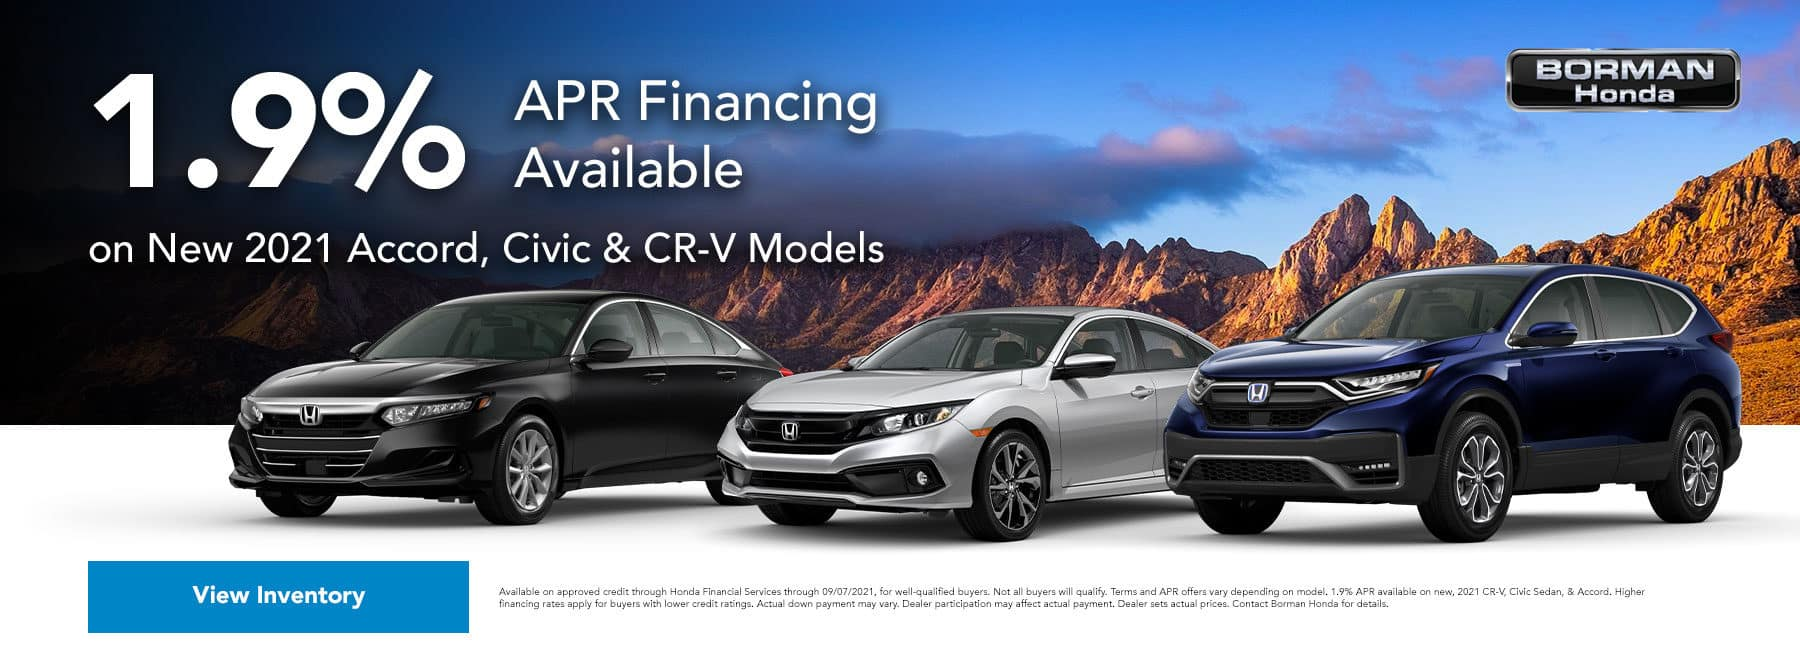 1.9% APR Financing Available on New 2021 Accord, Civic & CR-V Models